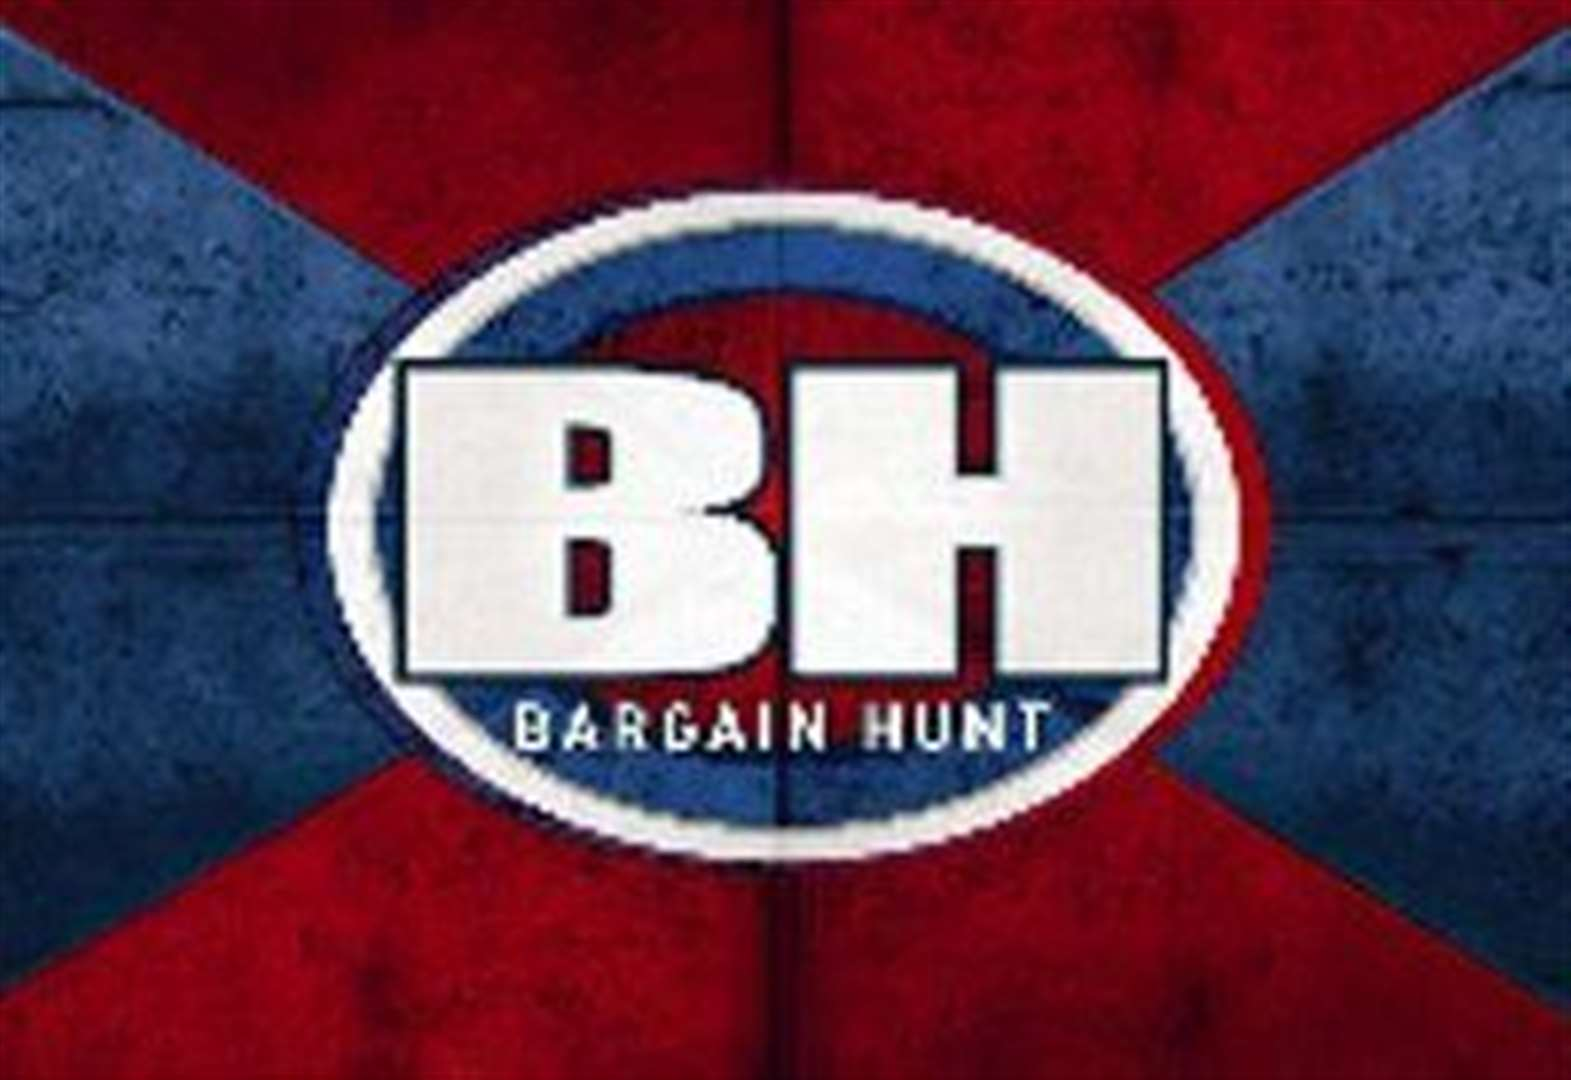 BBC Bargain Hunt at Stamford Meadows